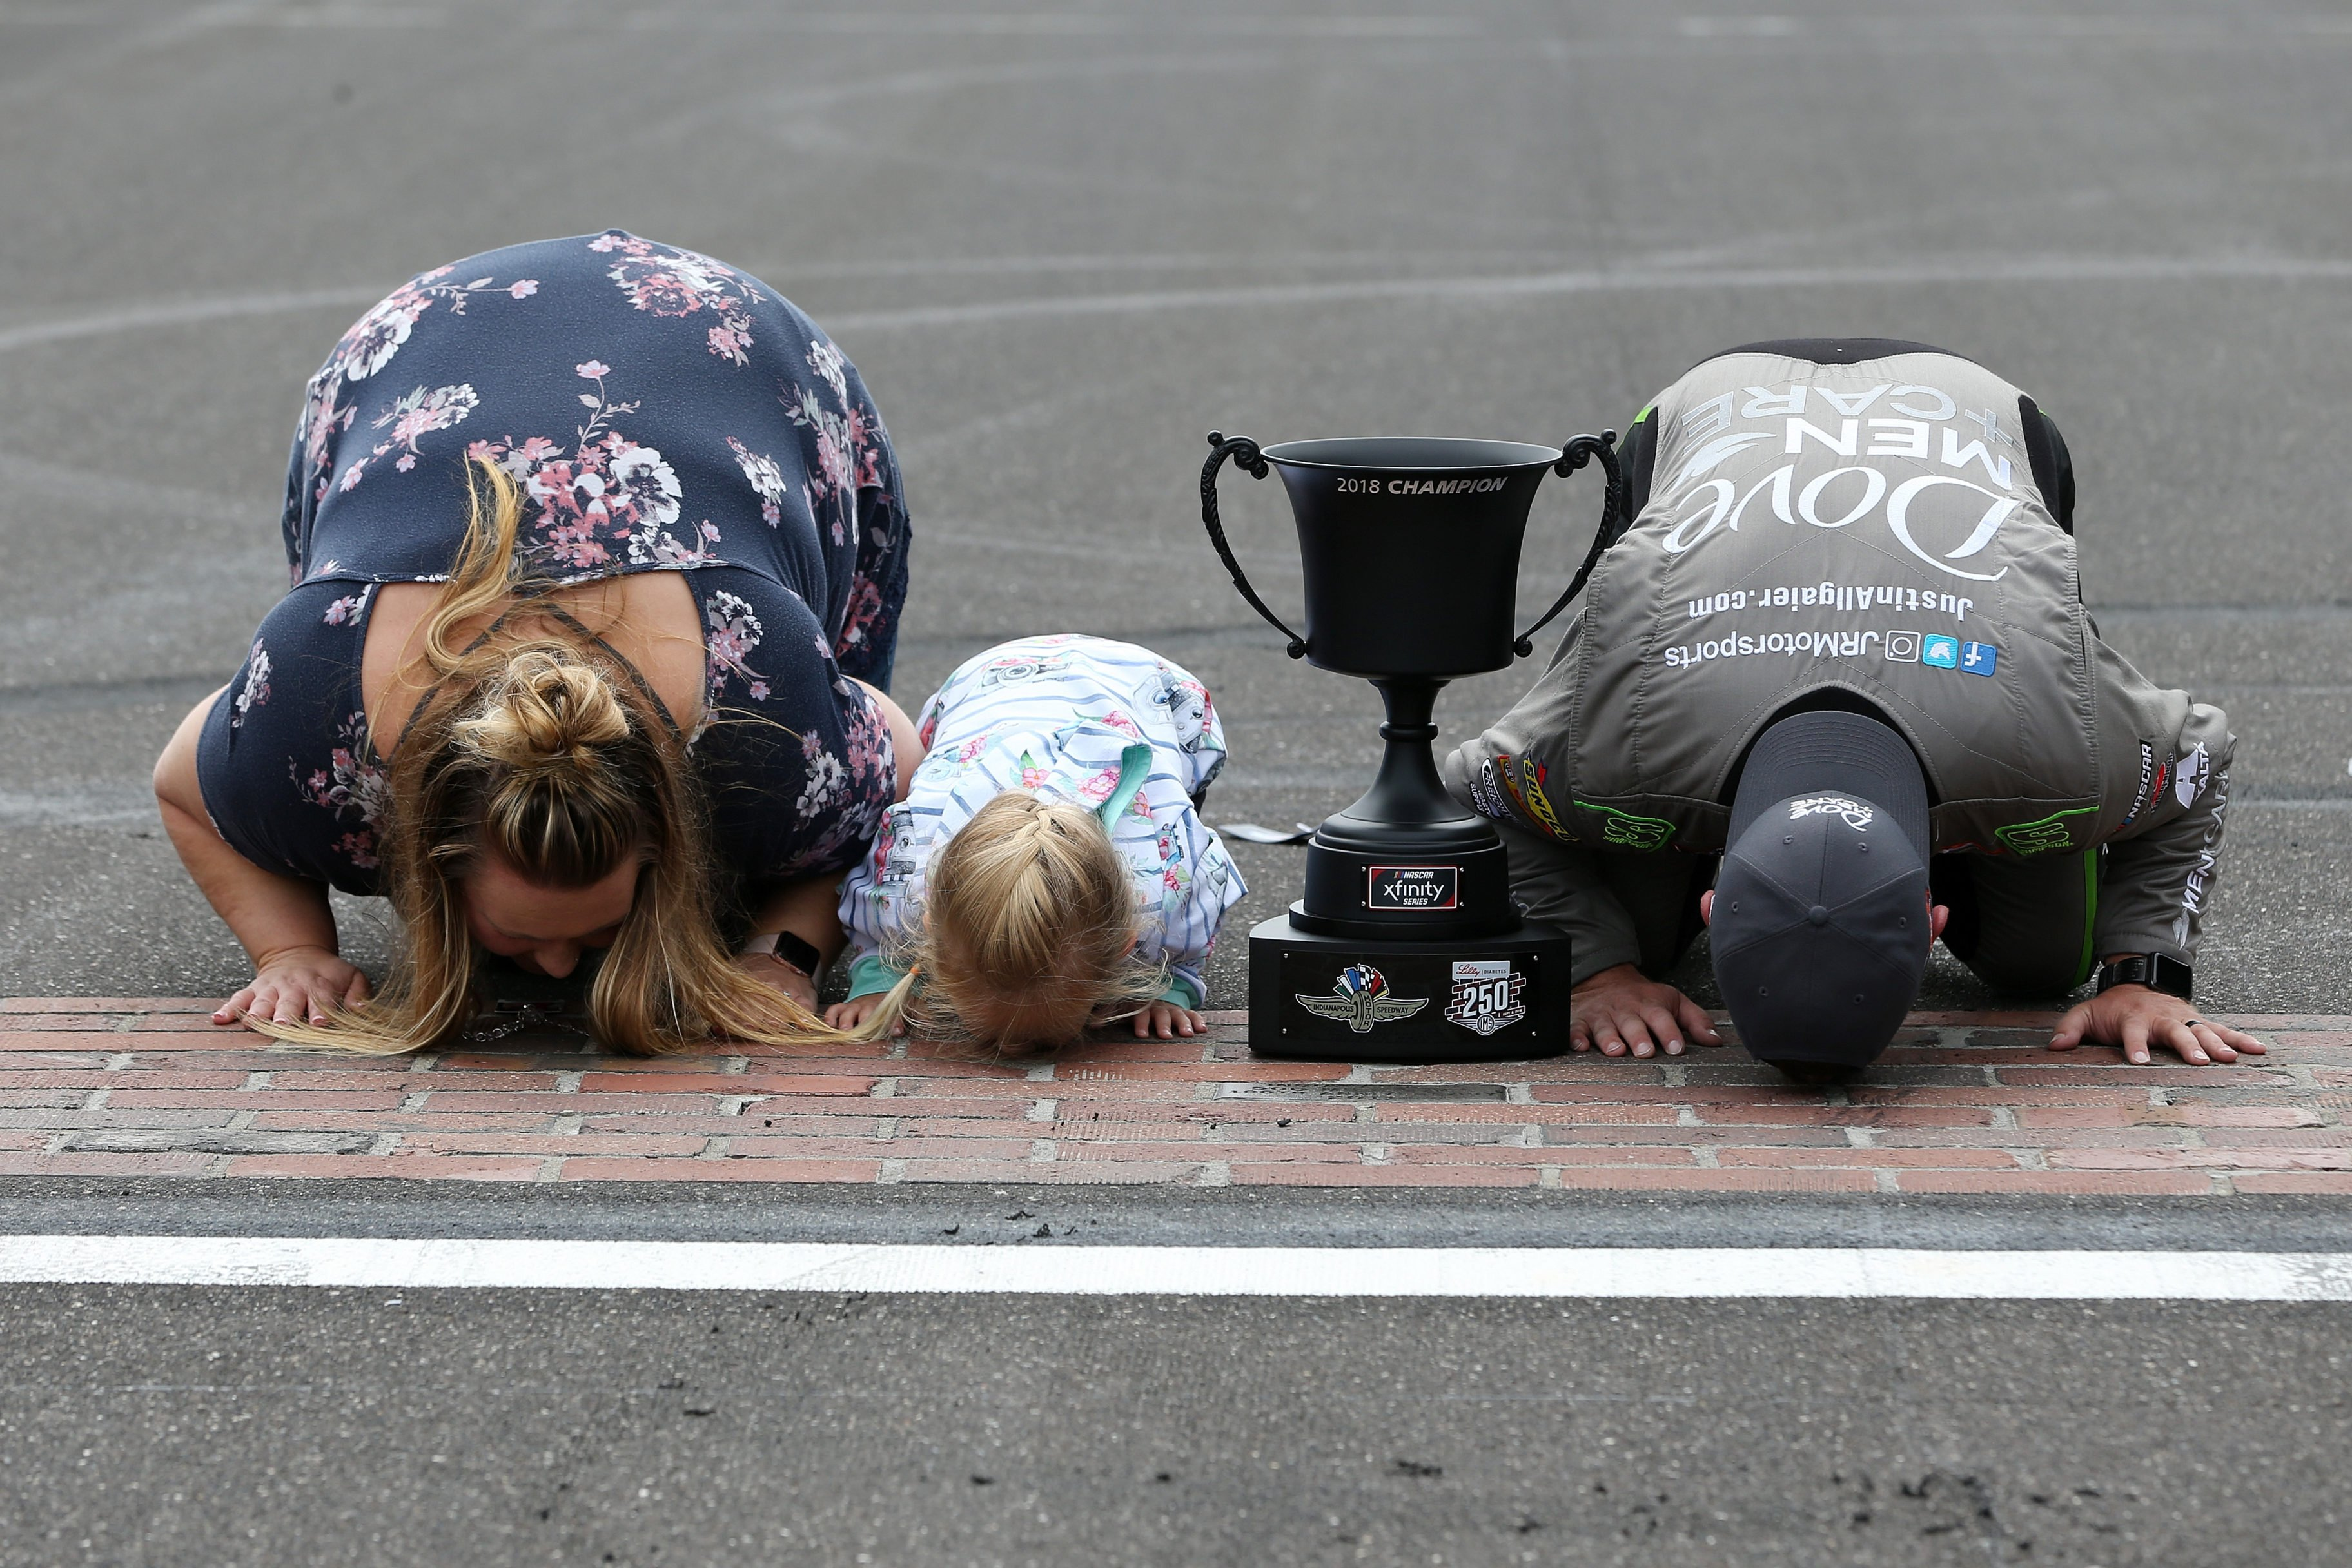 Justin Allgaier and family kisses the bricks at Indianapolis Motor Speedway